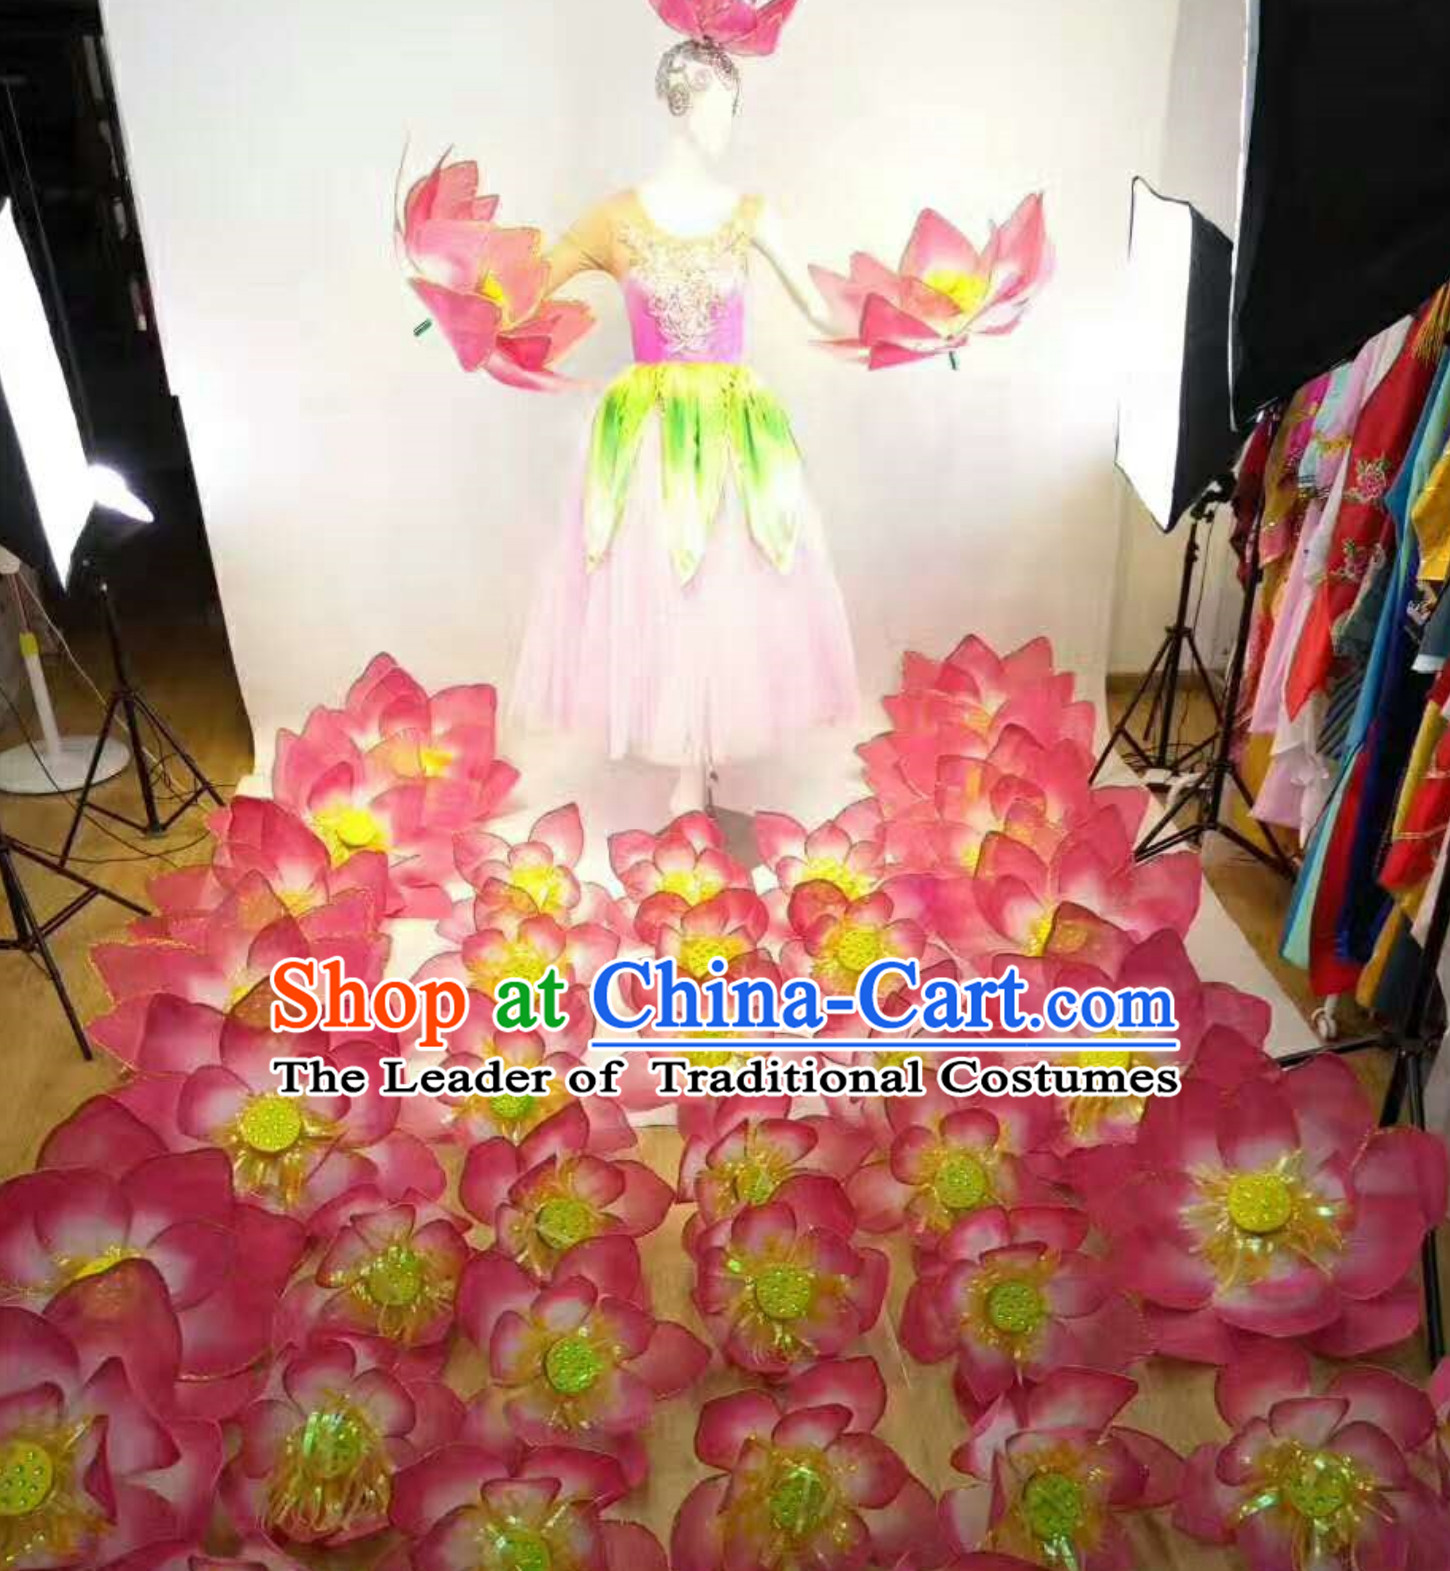 Professional Stage Performance Costumes Made to Order Custom Tailored Costume Garment and Headpieces Complete Set